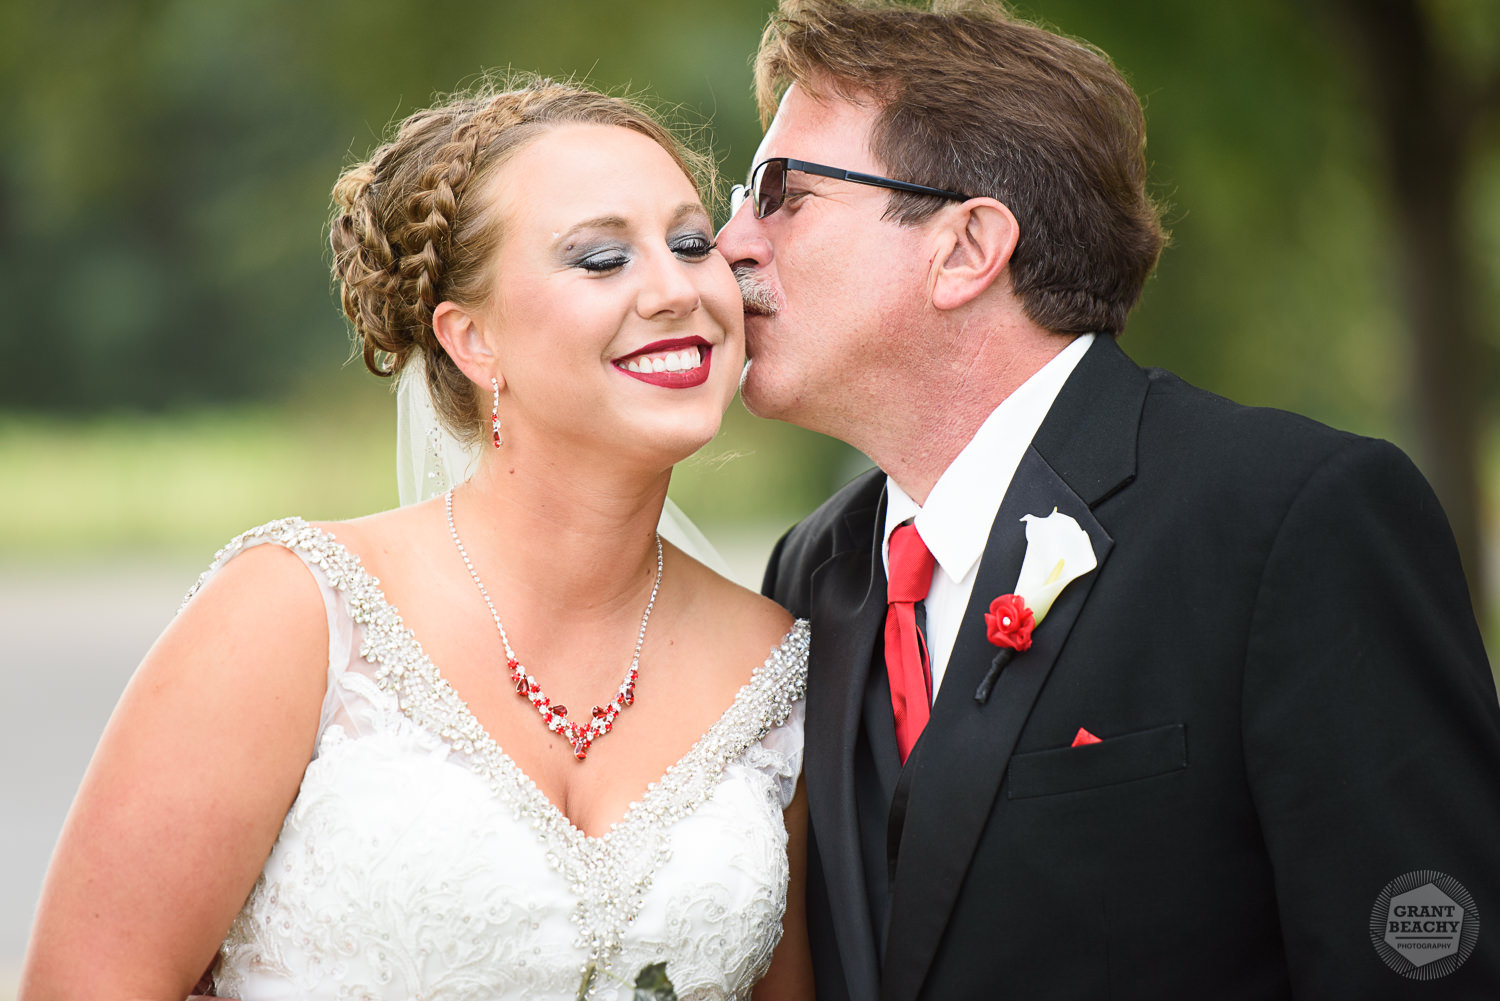 Grant Beachy wedding photographer, south bend, elkhart, chicago-13.jpg